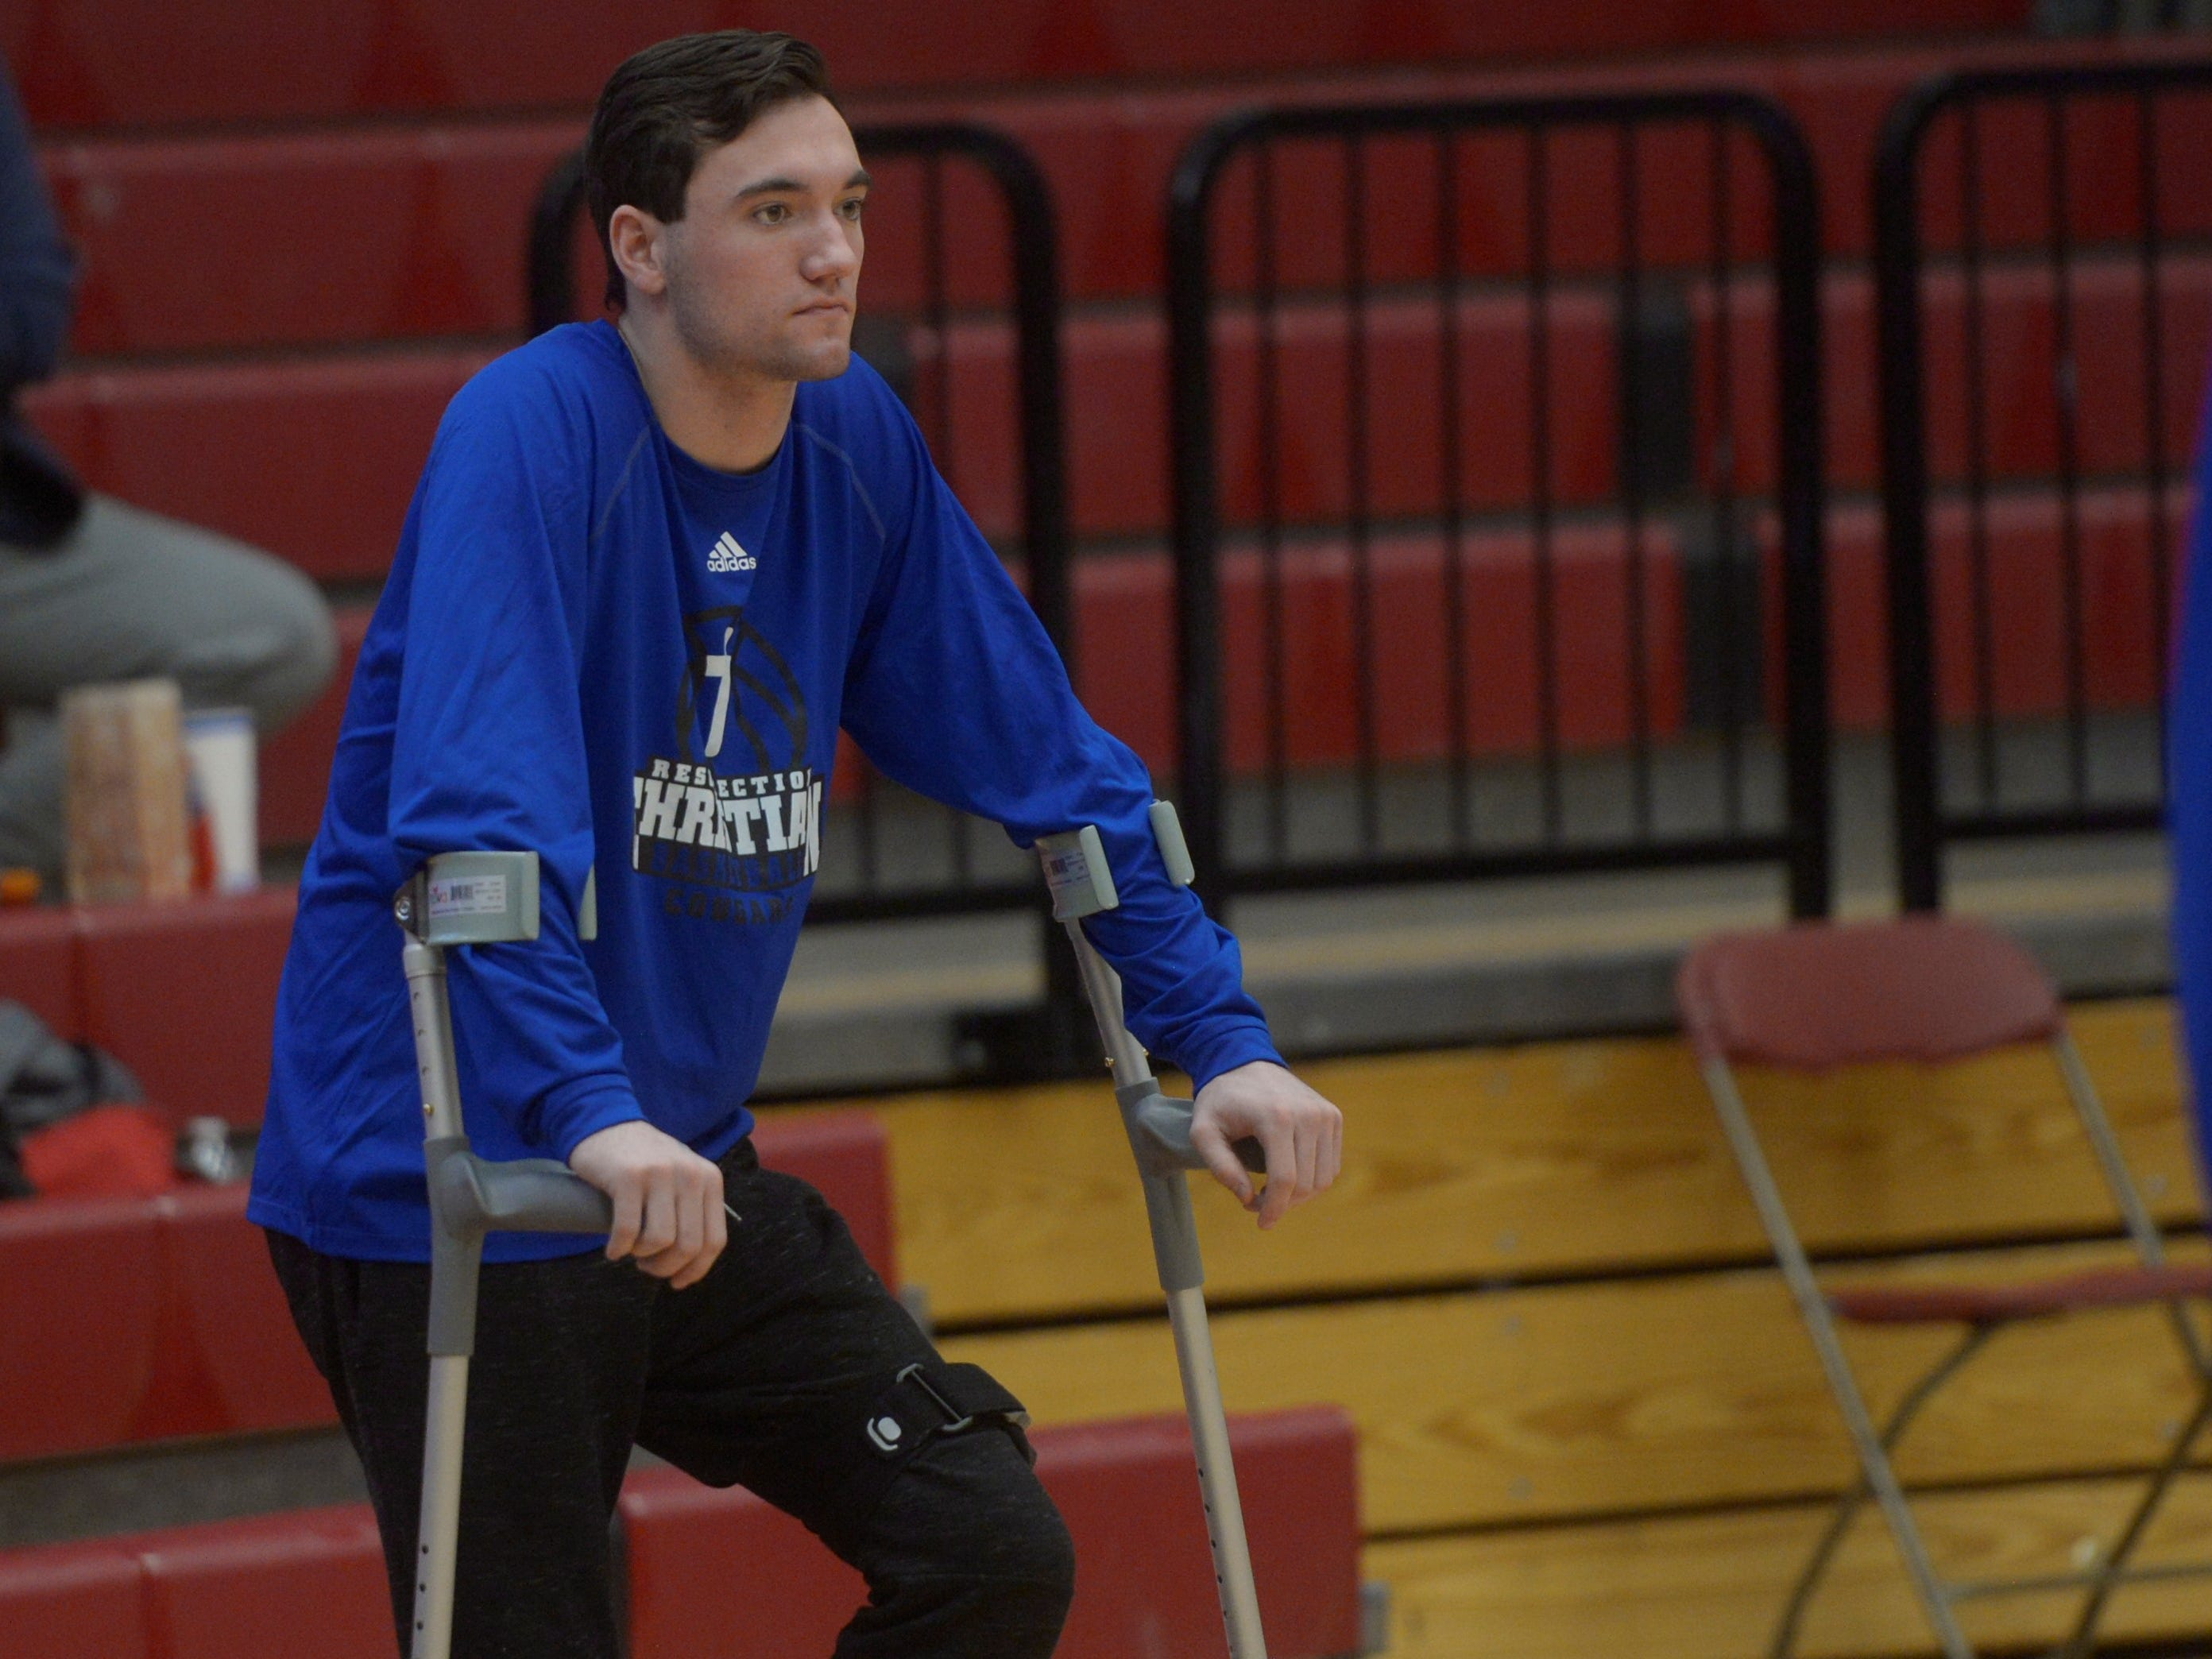 Injured Resurrection Christian player Colton Stahla watches his teammates warm up before a Class 3A quarterfinals game against Manual at the University of Denver on Thursday, March 7, 2019.